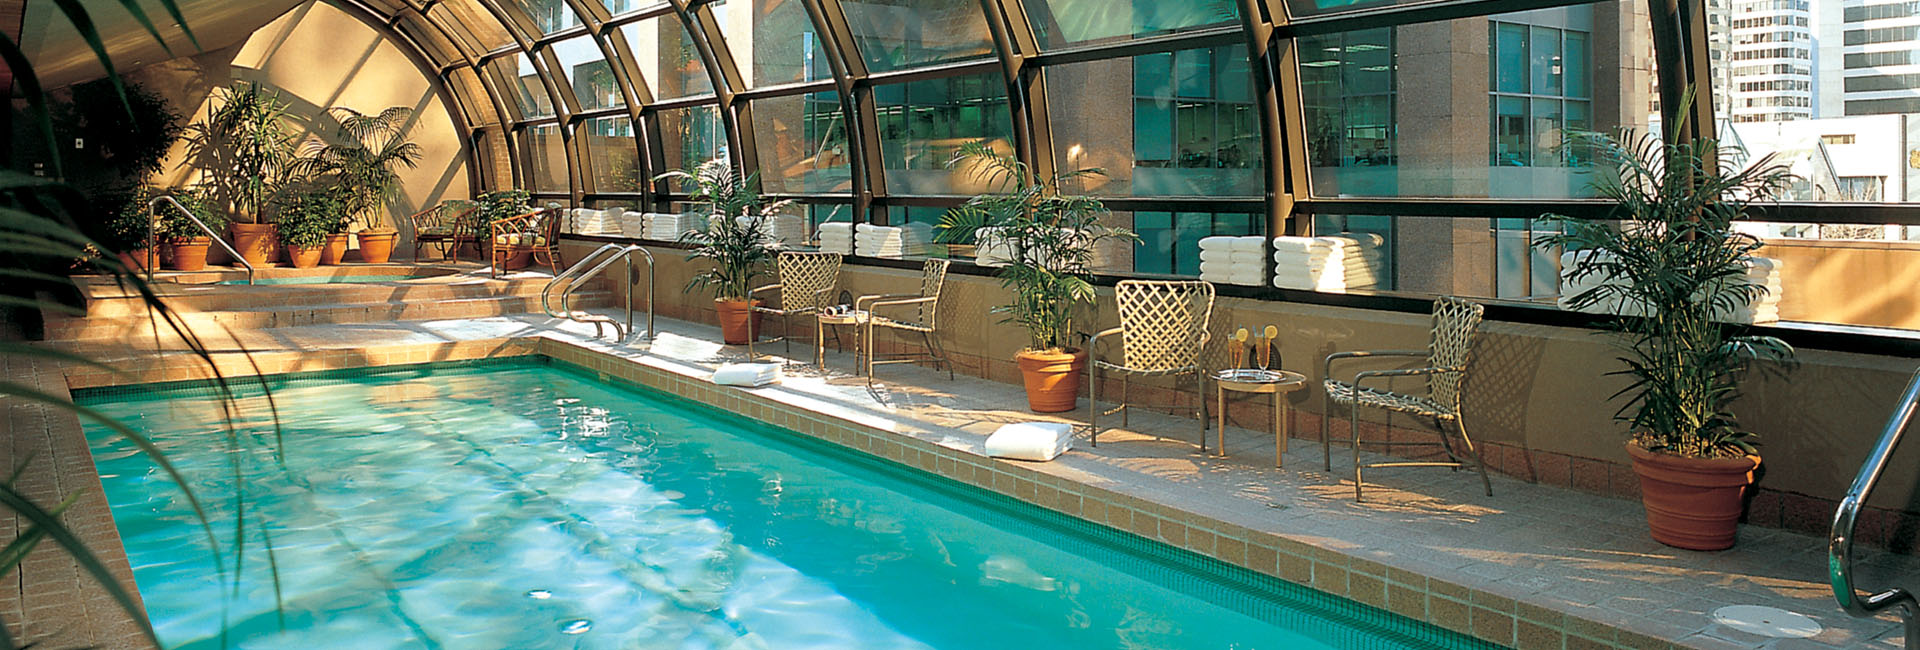 17 swimming pool design vancouver bc decor23 for Pool design vancouver